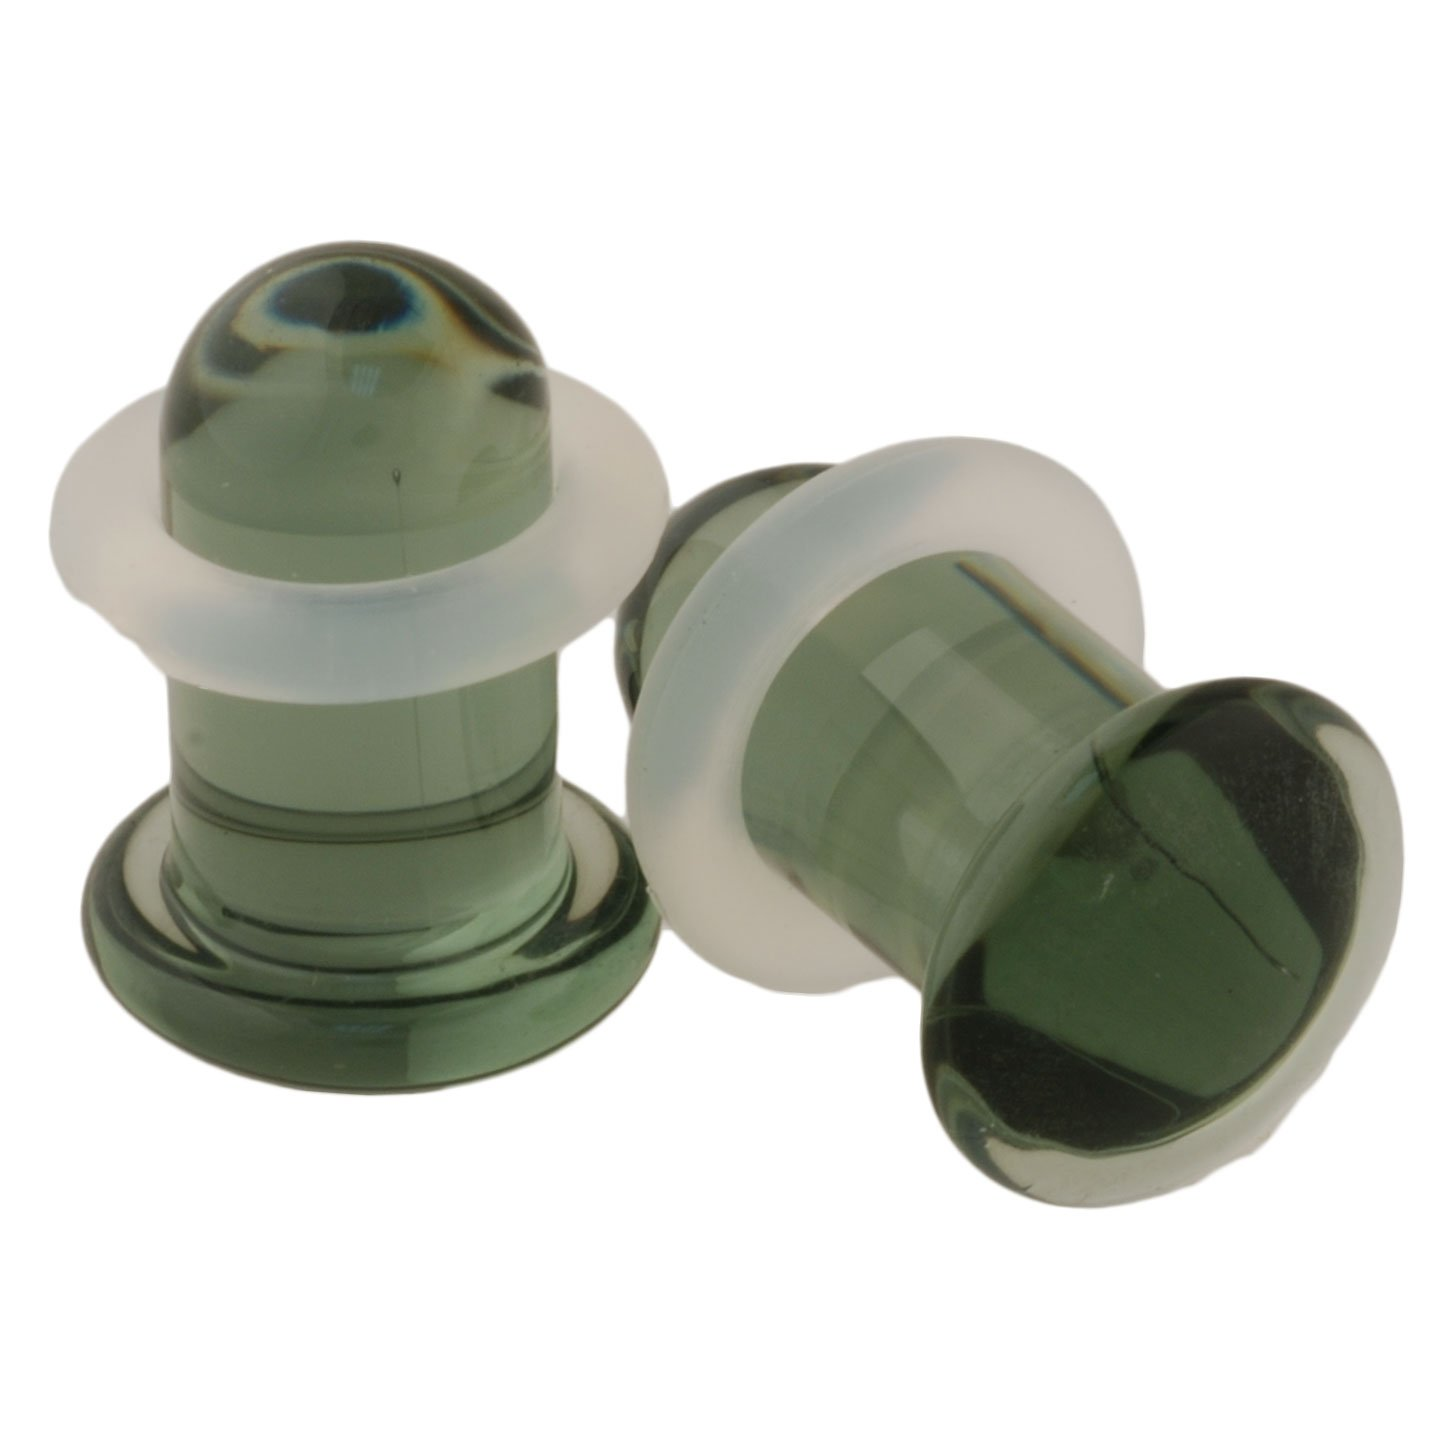 Pair of Glass Single Flared Solid Plugs: 1/2'' Smoke, Standard Length